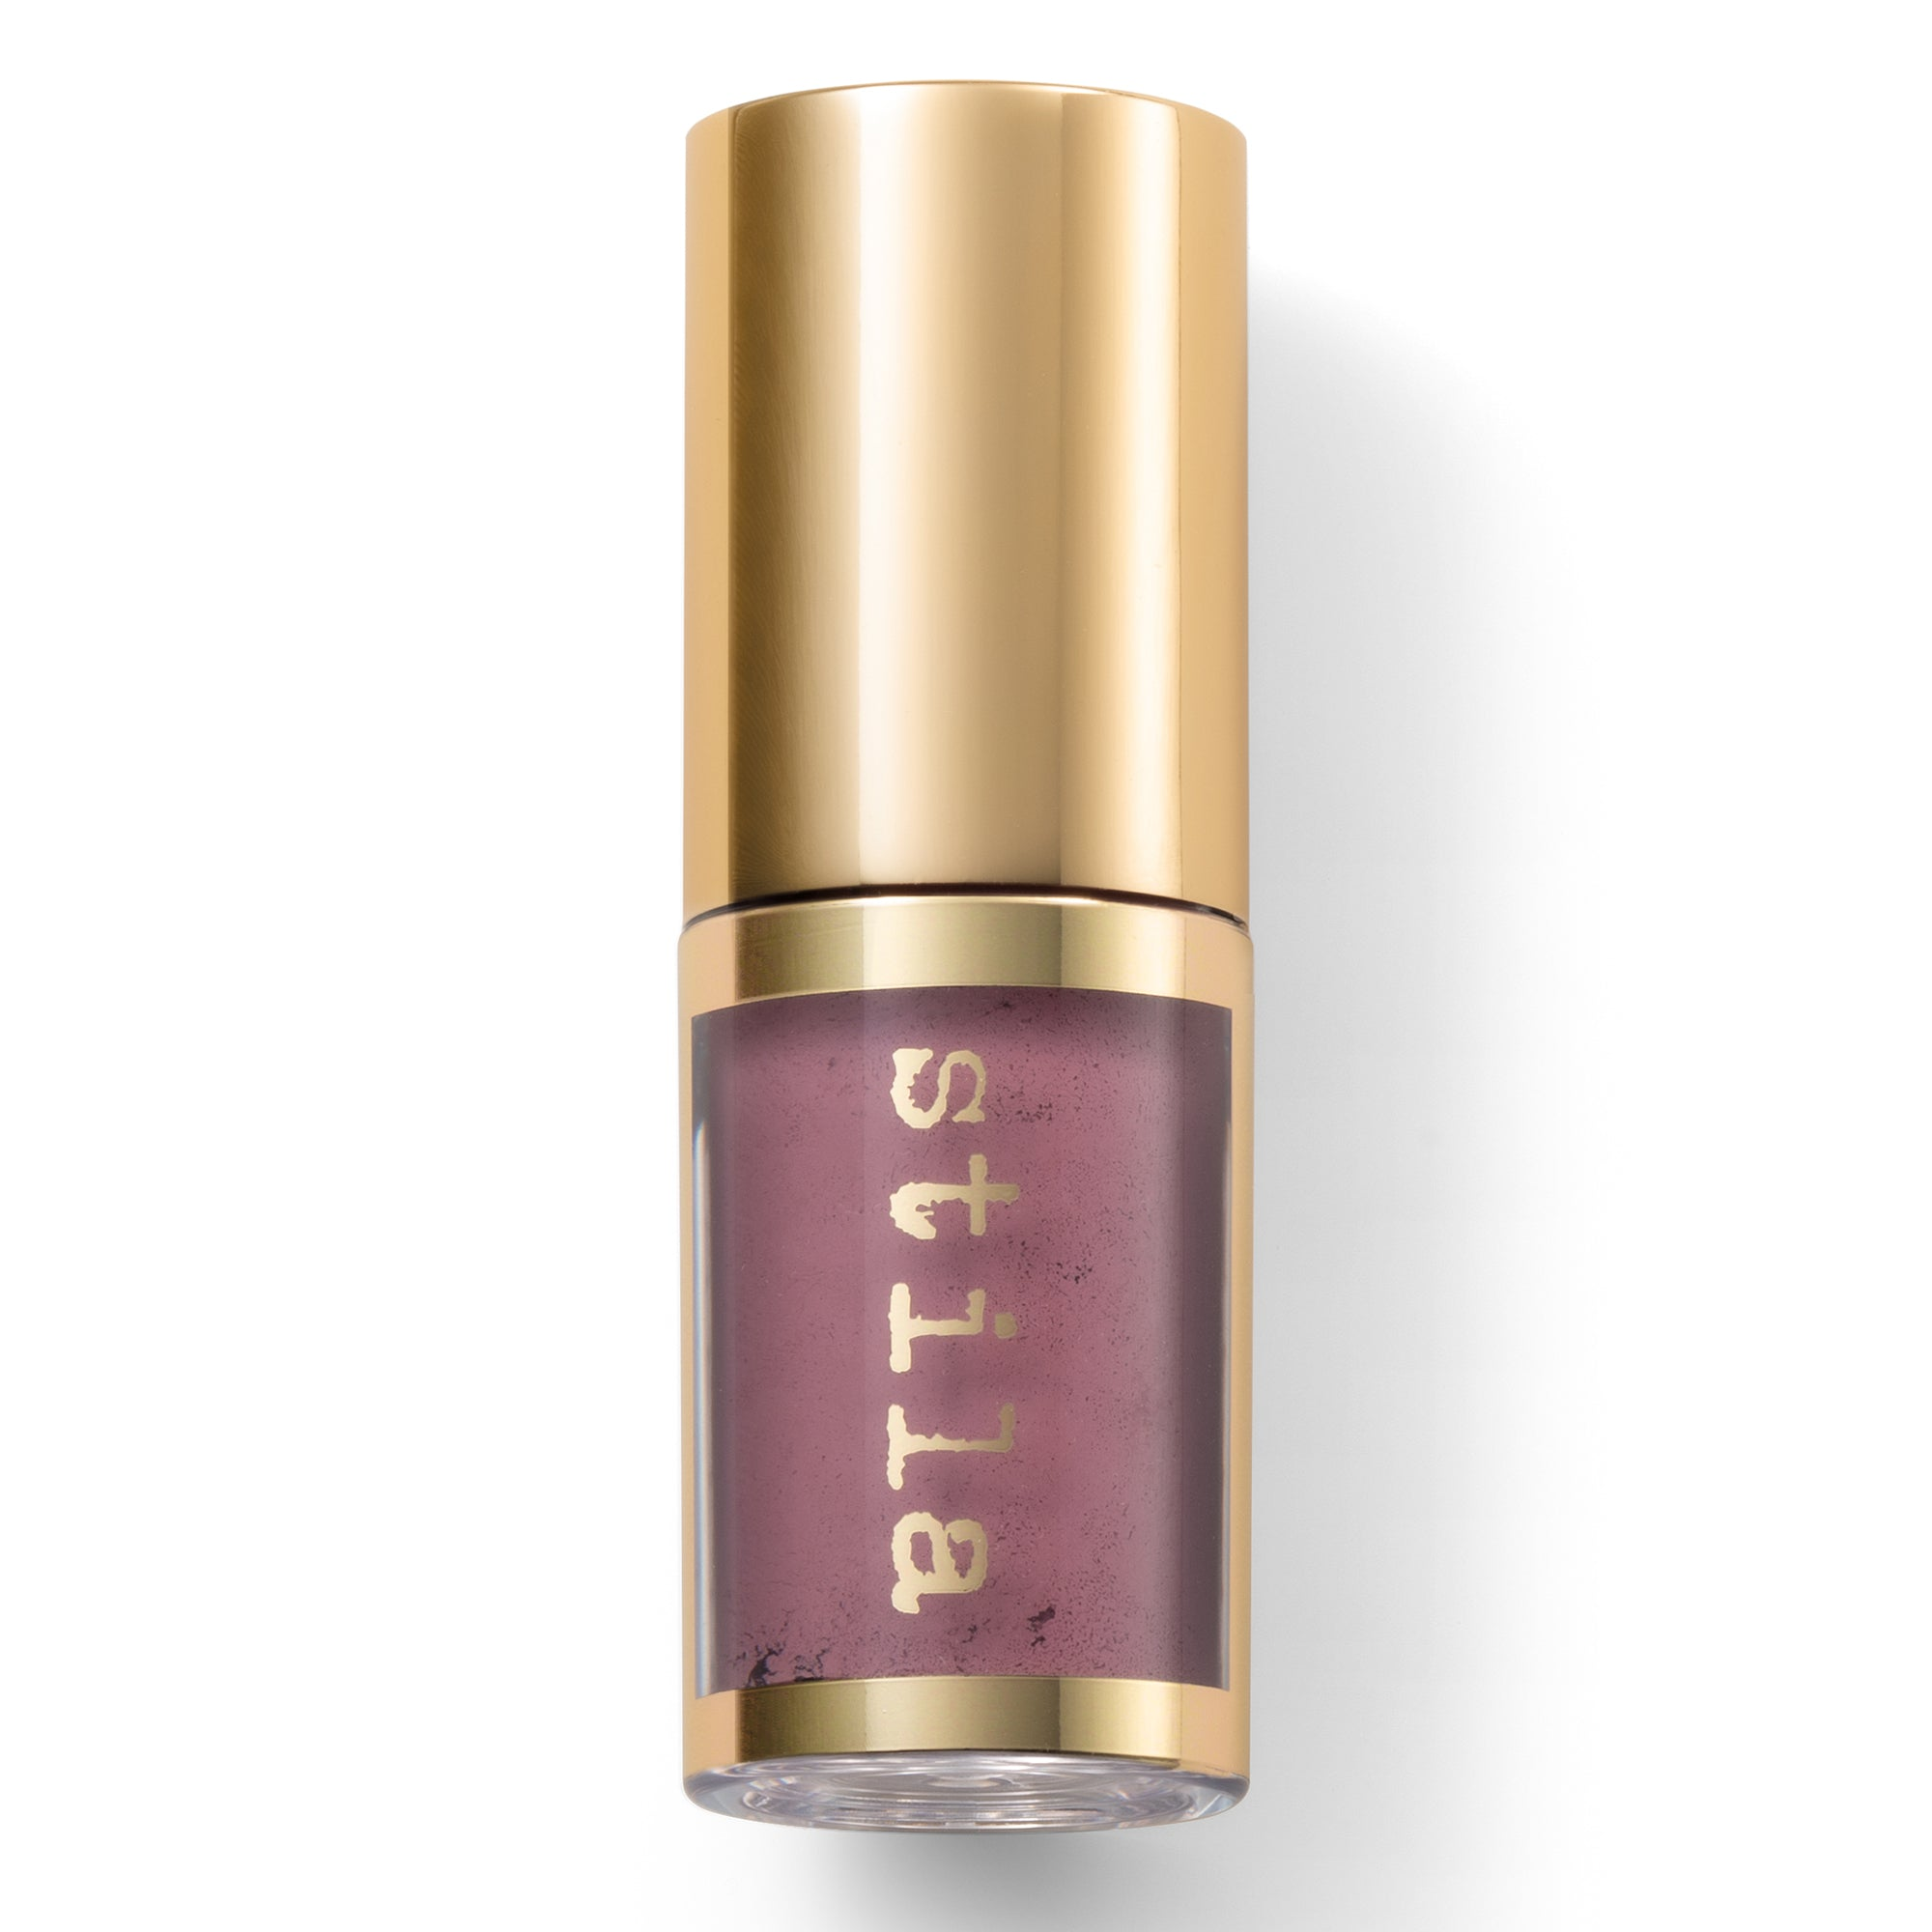 Stila Shine Fever™ Lip Vinyl - Turbo